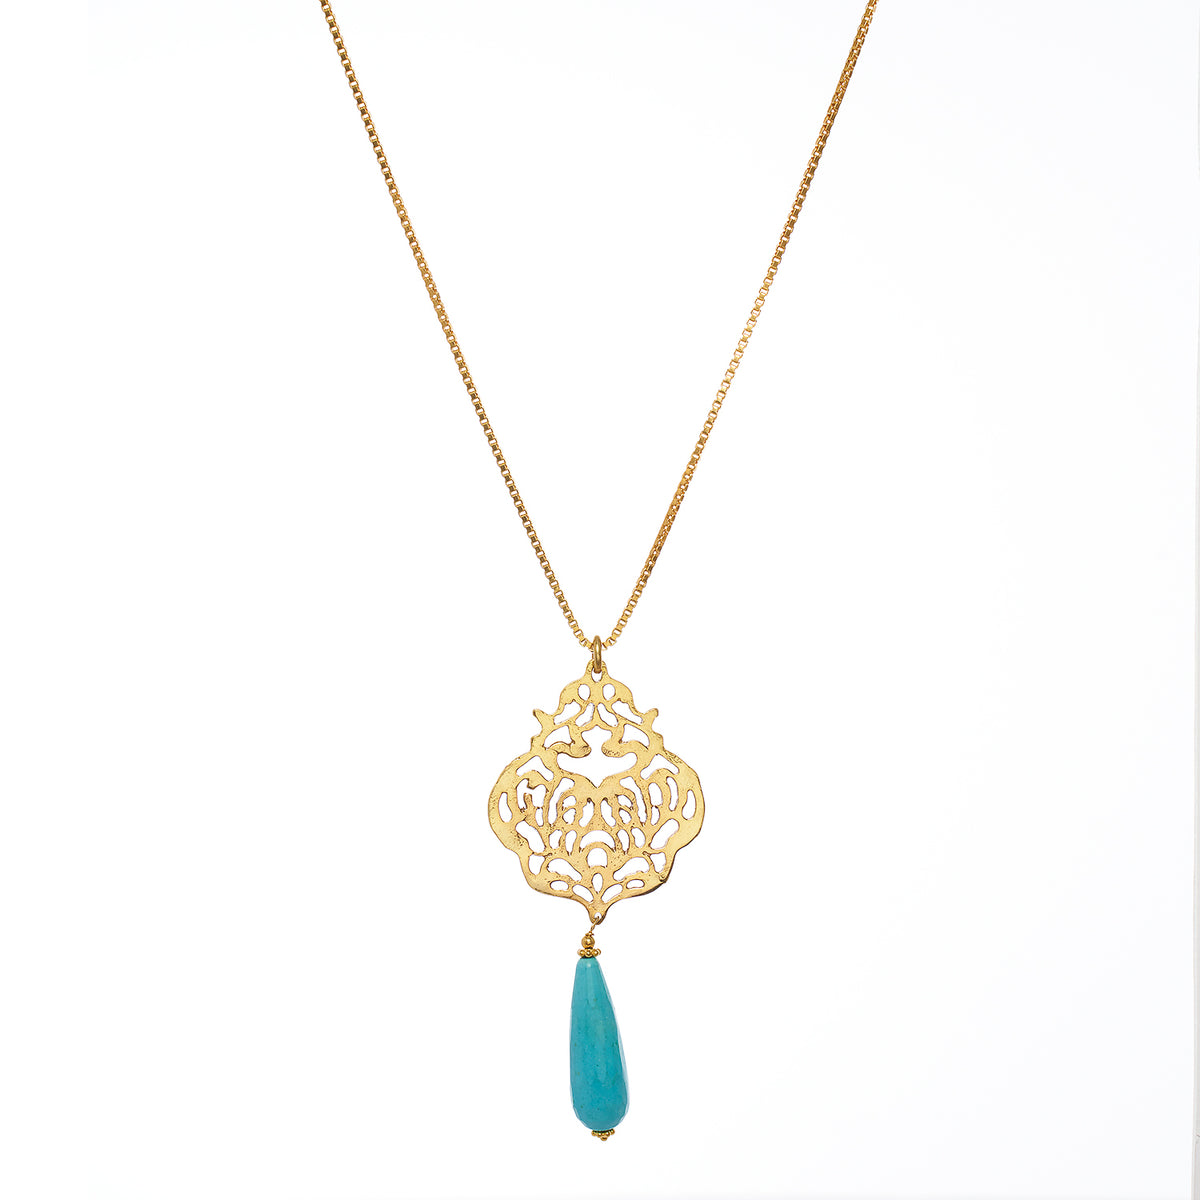 FLAMINGO NECKLACE Gold/Turquoise